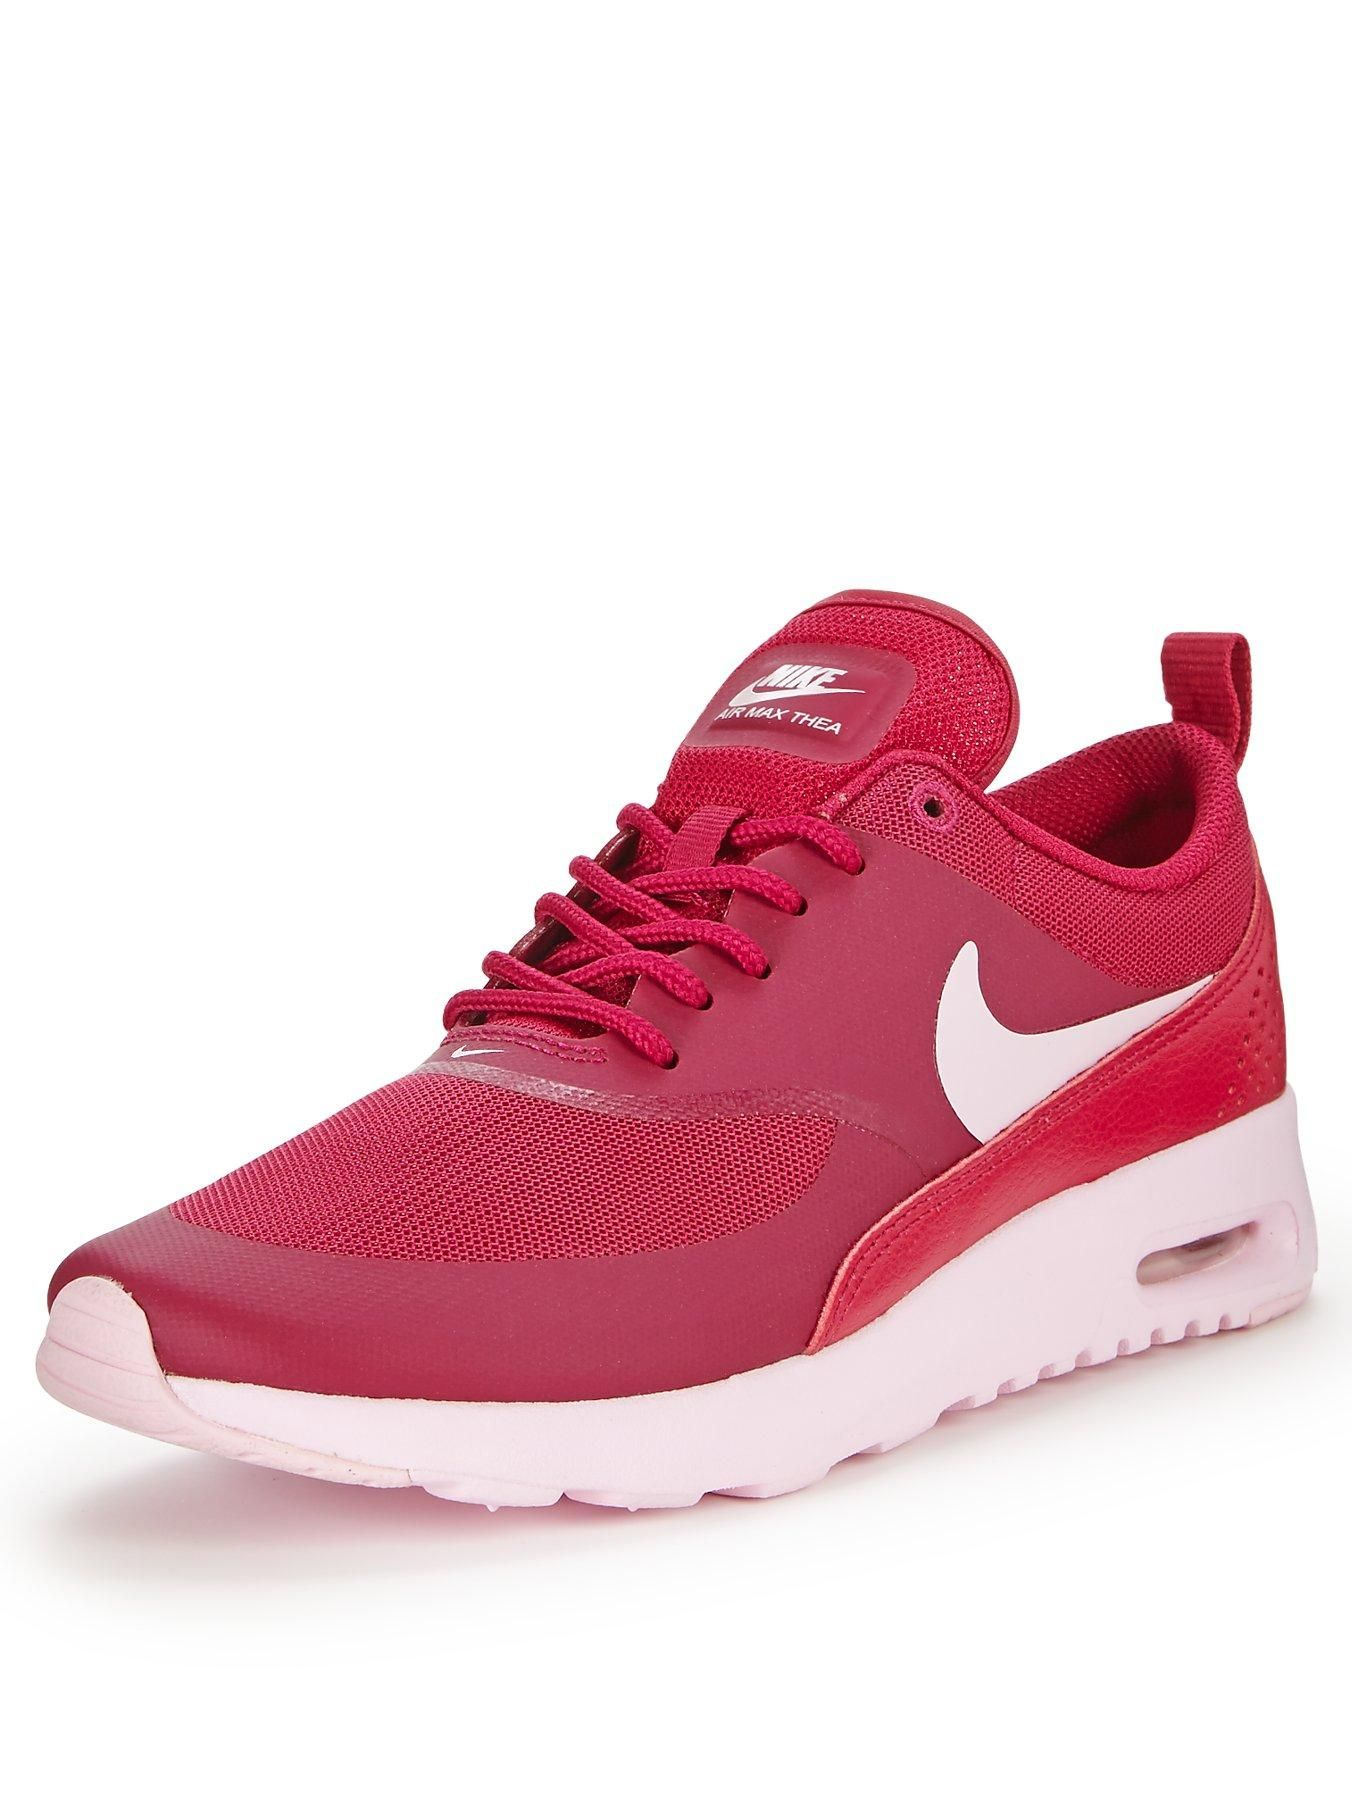 low priced 93921 02697 Nike Air Max Thea Trainers   very.co.uk Air Max Thea, Nike